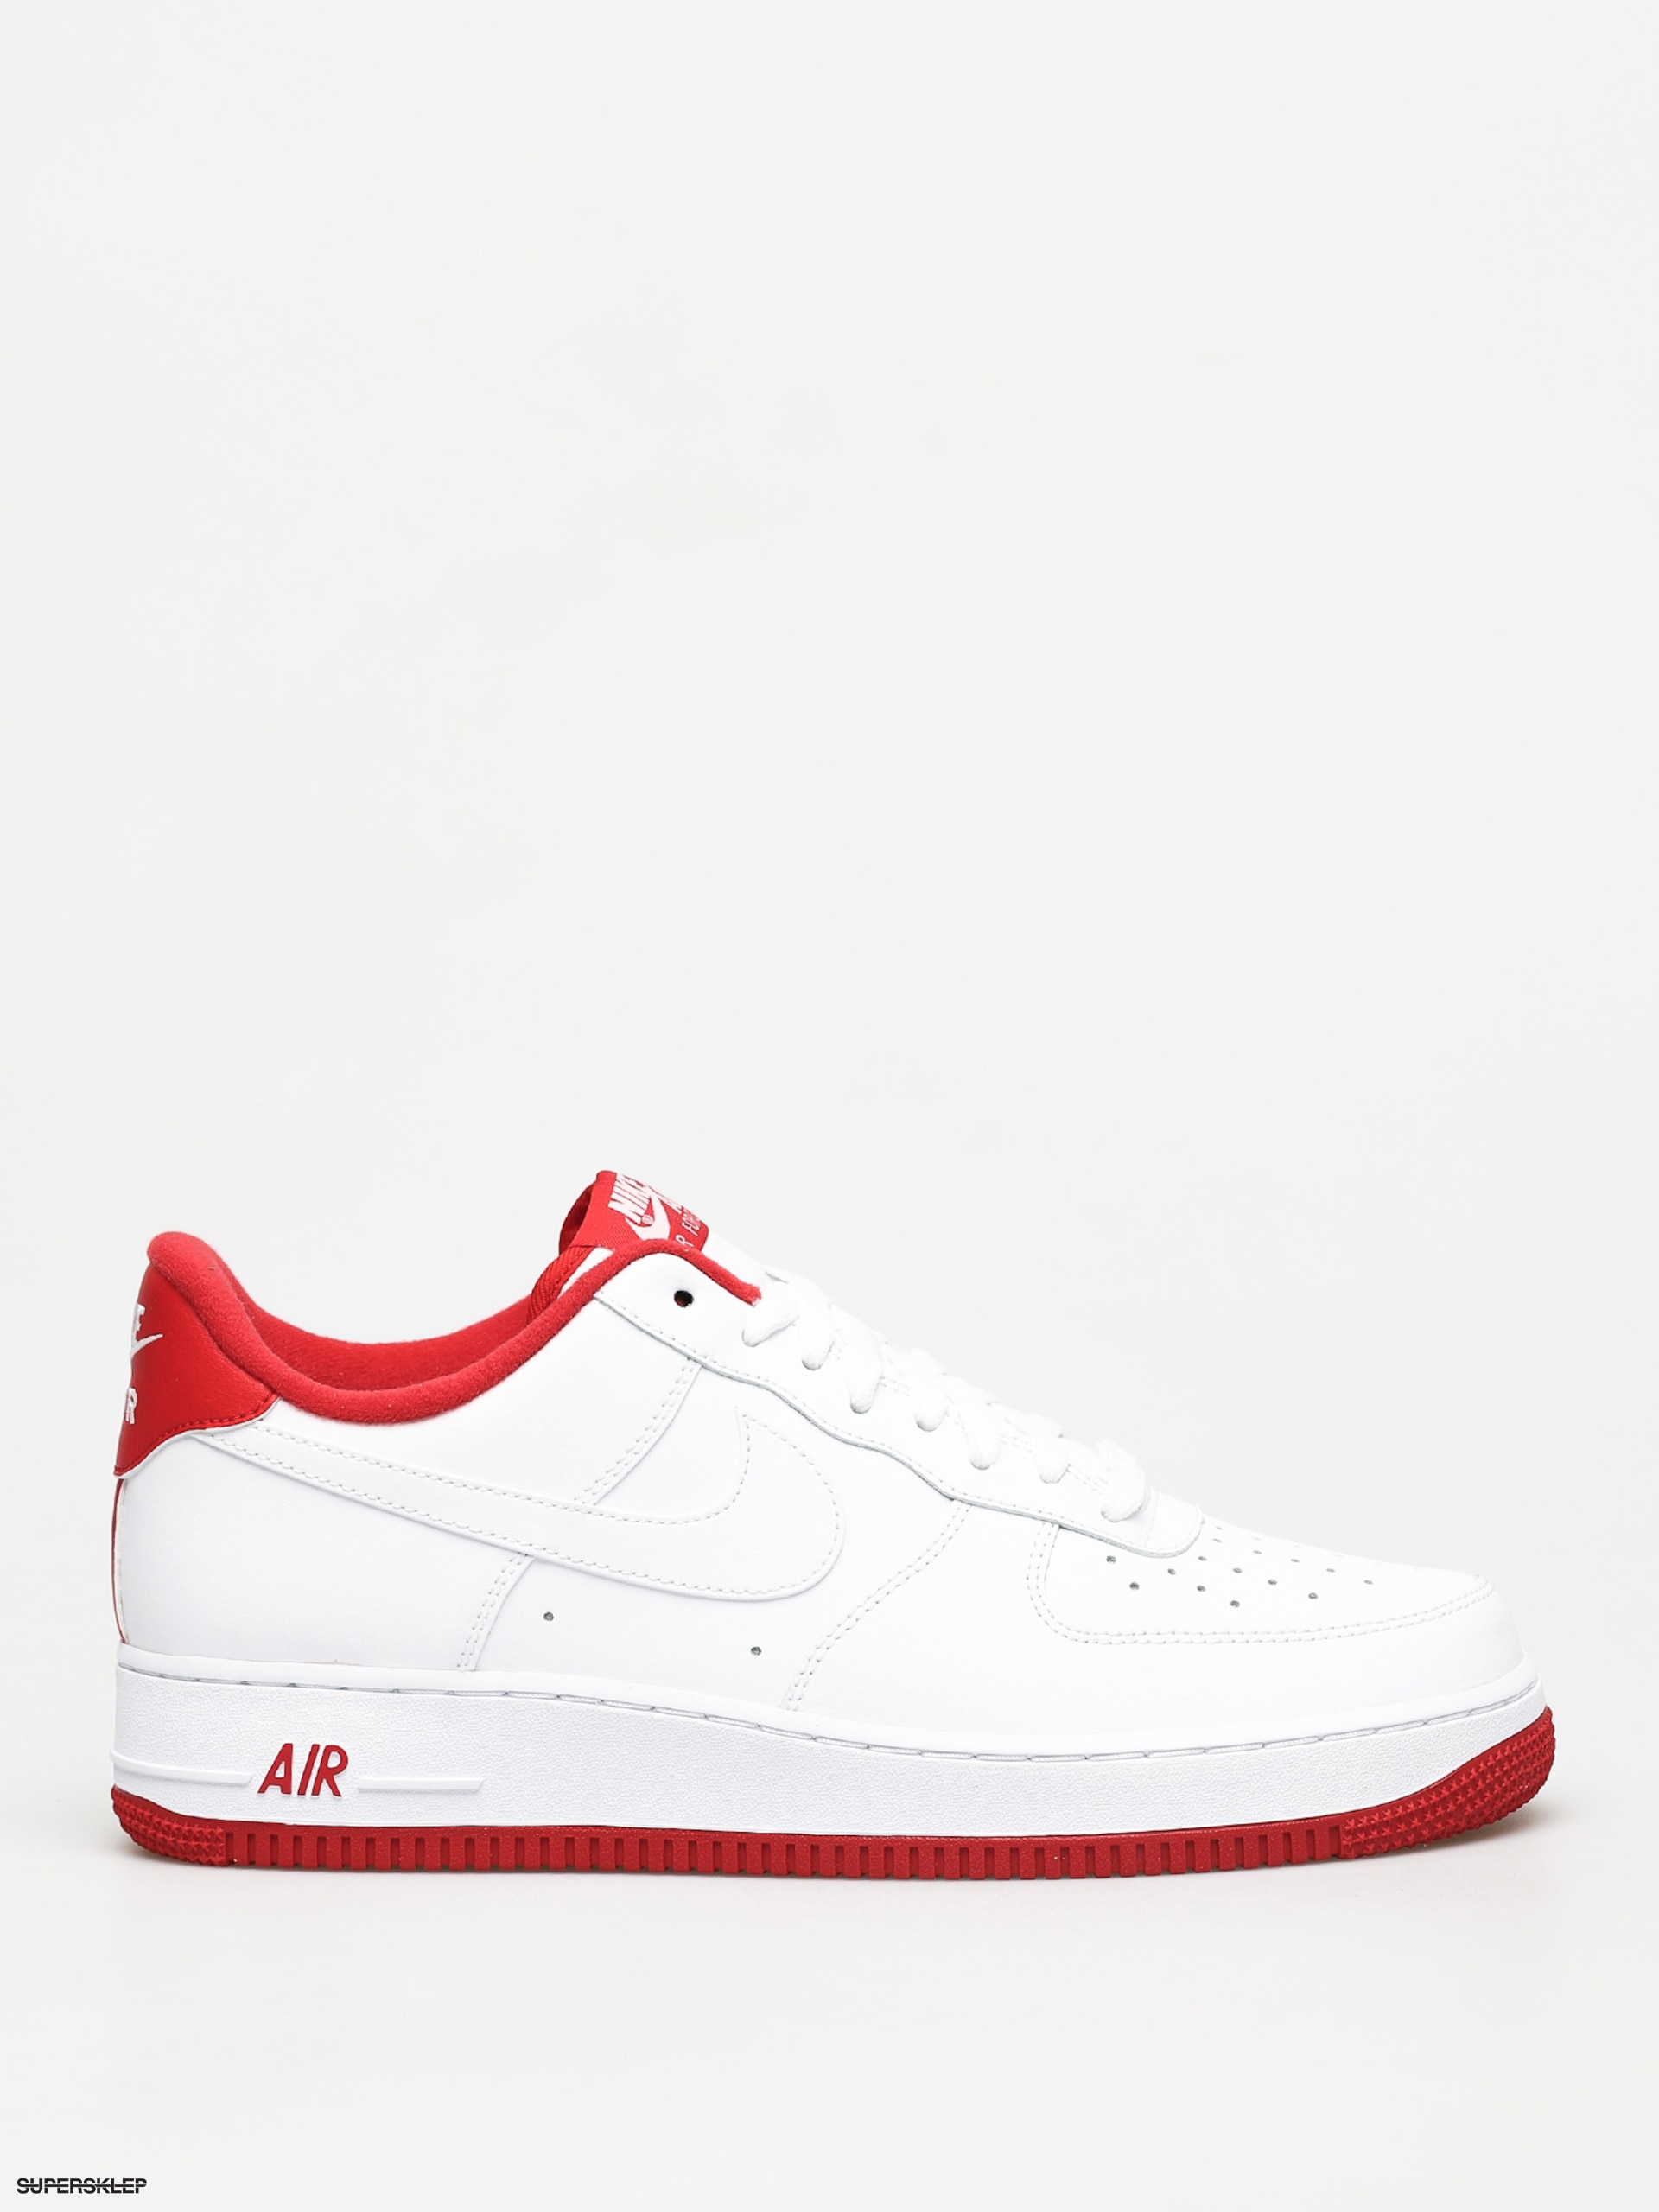 Nike Air Force 1 Low '07 LV8 Red AJ7747 600, r. 41